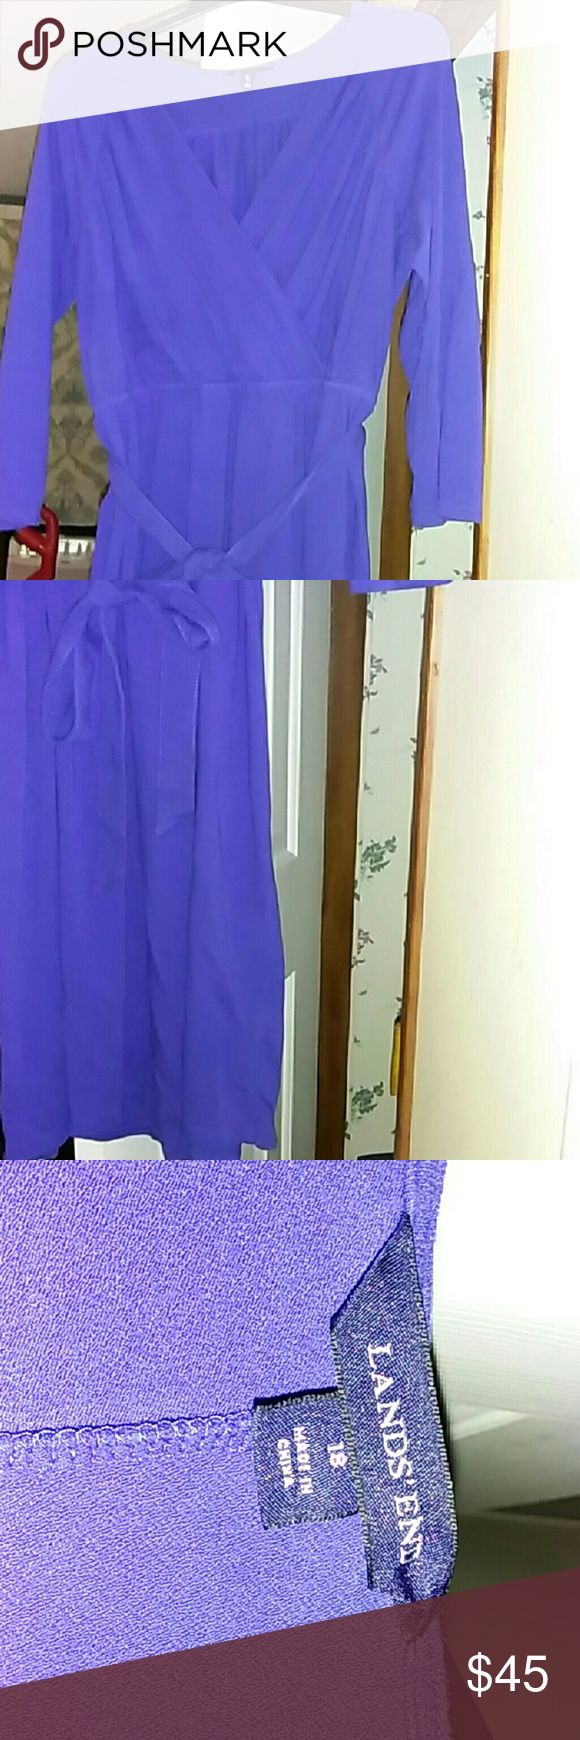 """Lands' End wrap look dress, EUC Gorgeous true royal blue, wrap look dress. 42"""" length from shoulder to hem. Waist across front unstretched is 18"""". It will stretch to 26"""", but I feel that would warp the lay of the dress. Chest is 24"""", across the front, but there would be A LOT of give with that considering the style. For those of us with smaller """"girls"""", you can use a safety pin to keep the top closed more. This was worn once and washed.  Throw on some heels and paint the town...Blue ❤ Lands'…"""